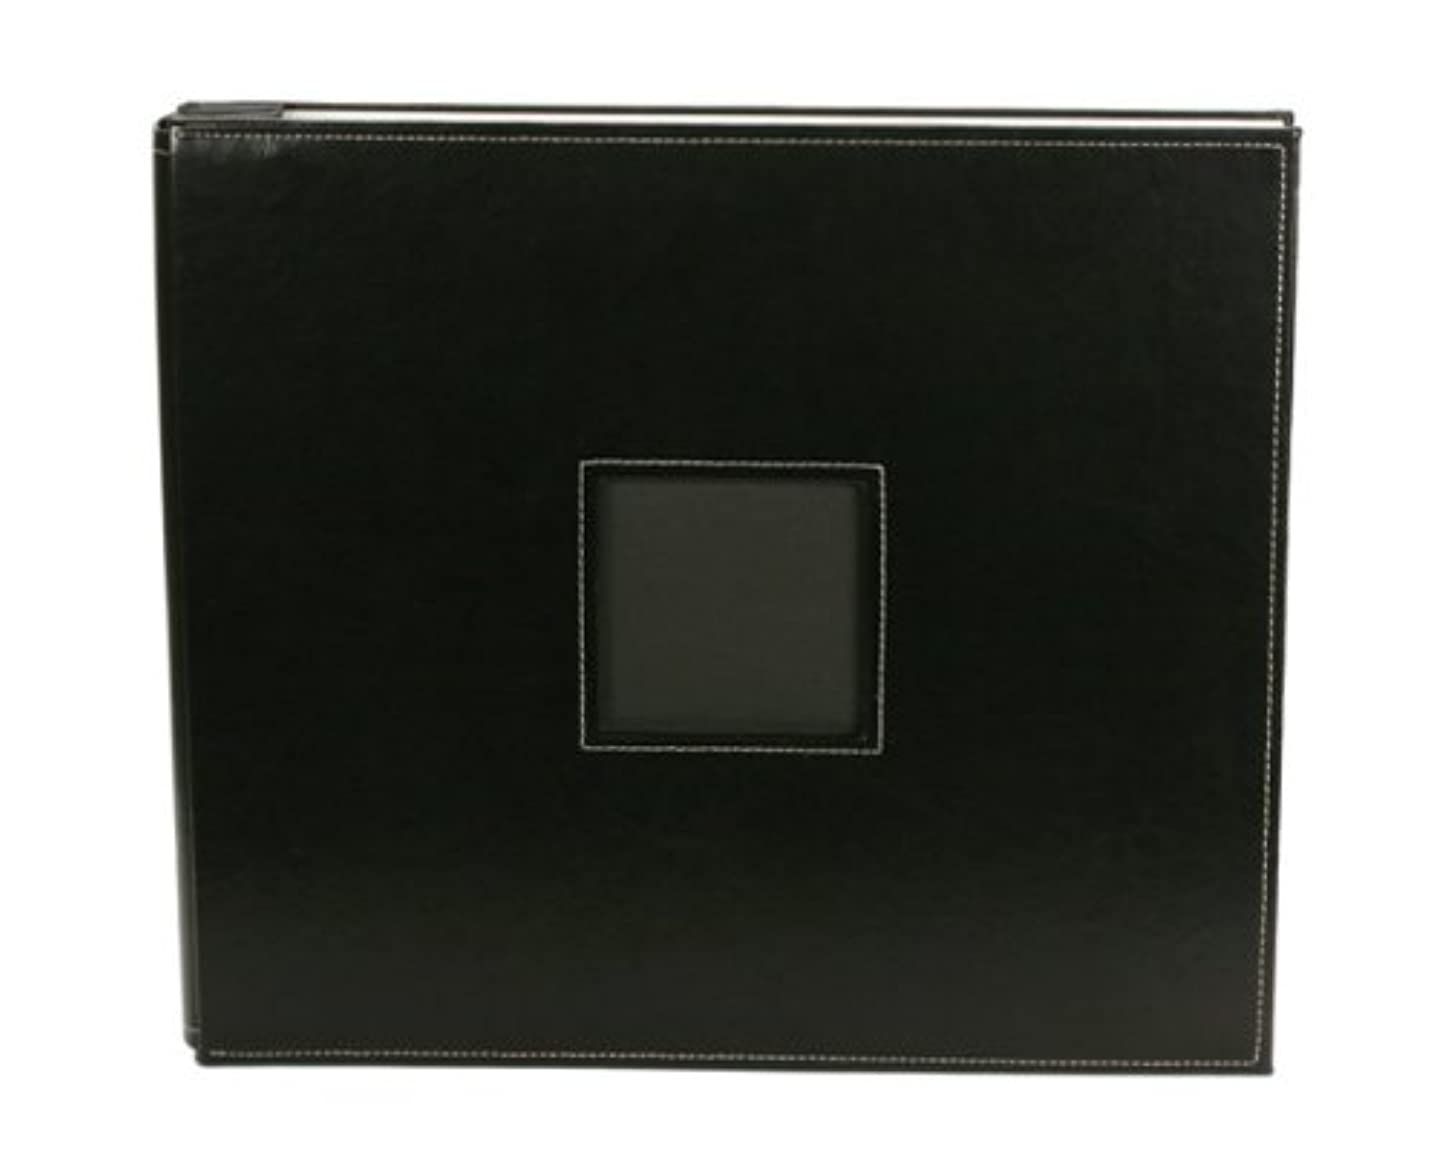 American Crafts 12-Inch by 12-Inch Post Bound Leather Scrapbooking Album, Black